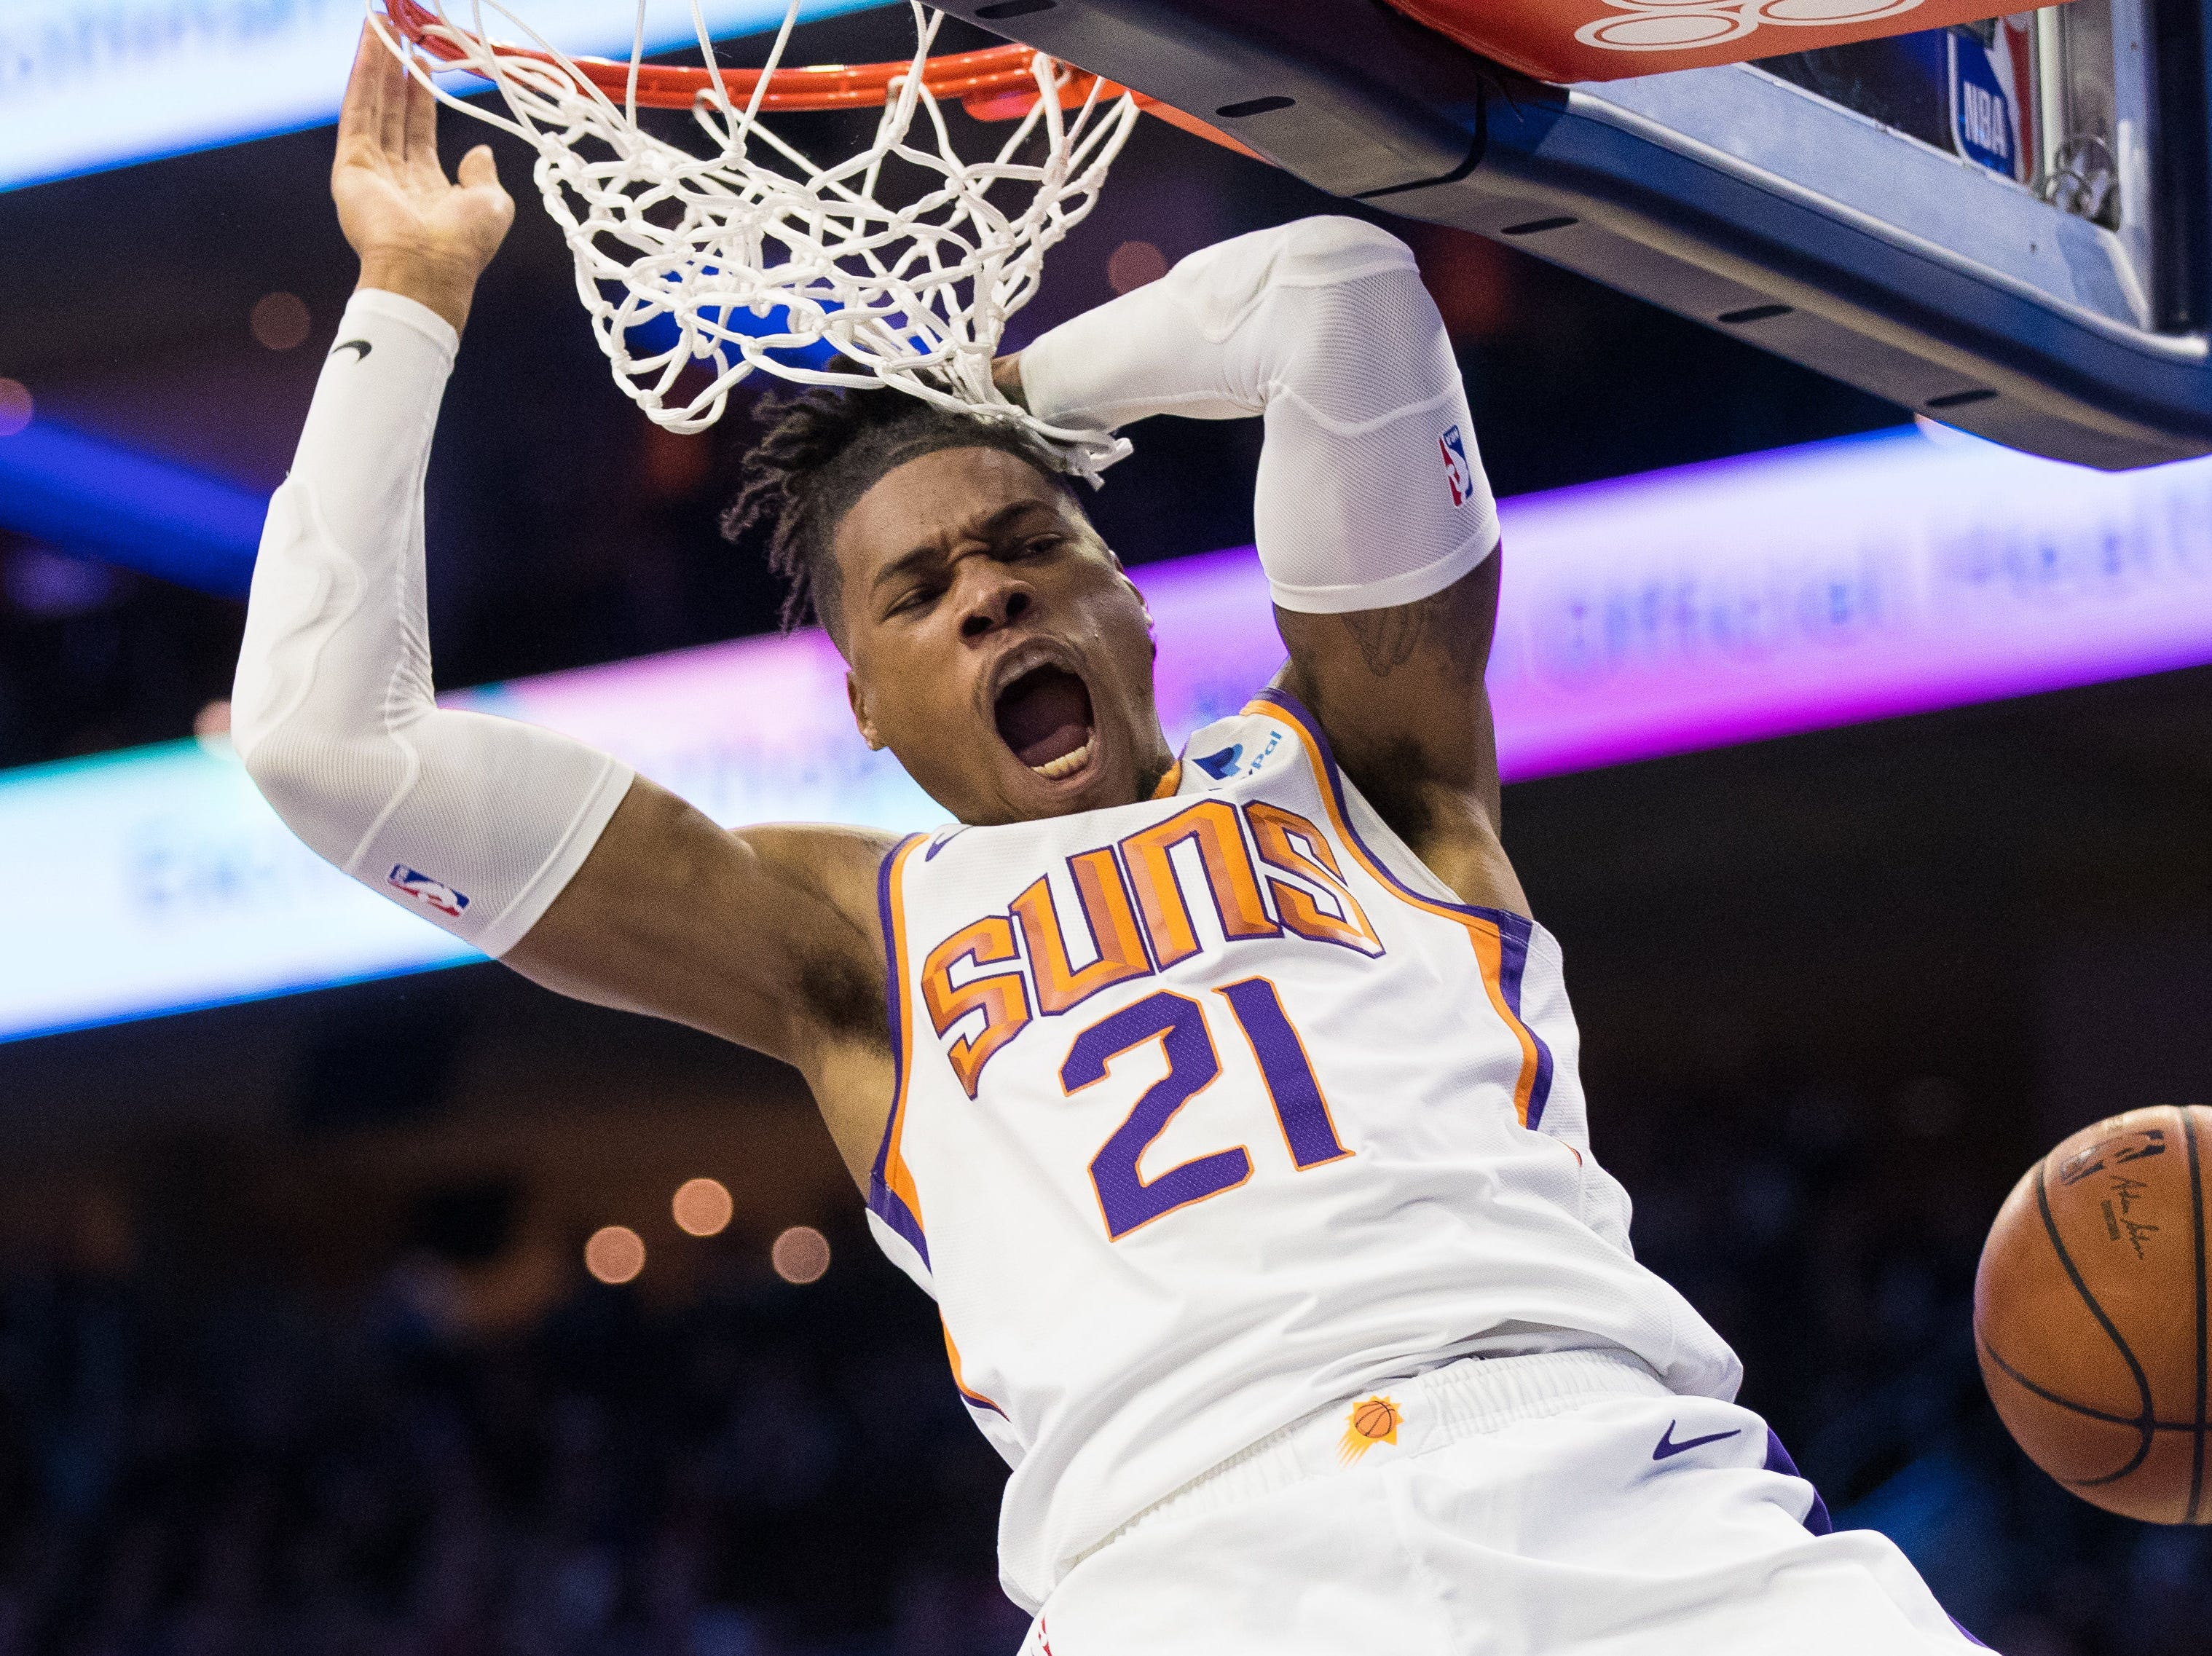 Nov. 19: Phoenix Suns forward Richaun Holmes reacts as he dunks against the Philadelphia 76ers during the first quarter at Wells Fargo Center.